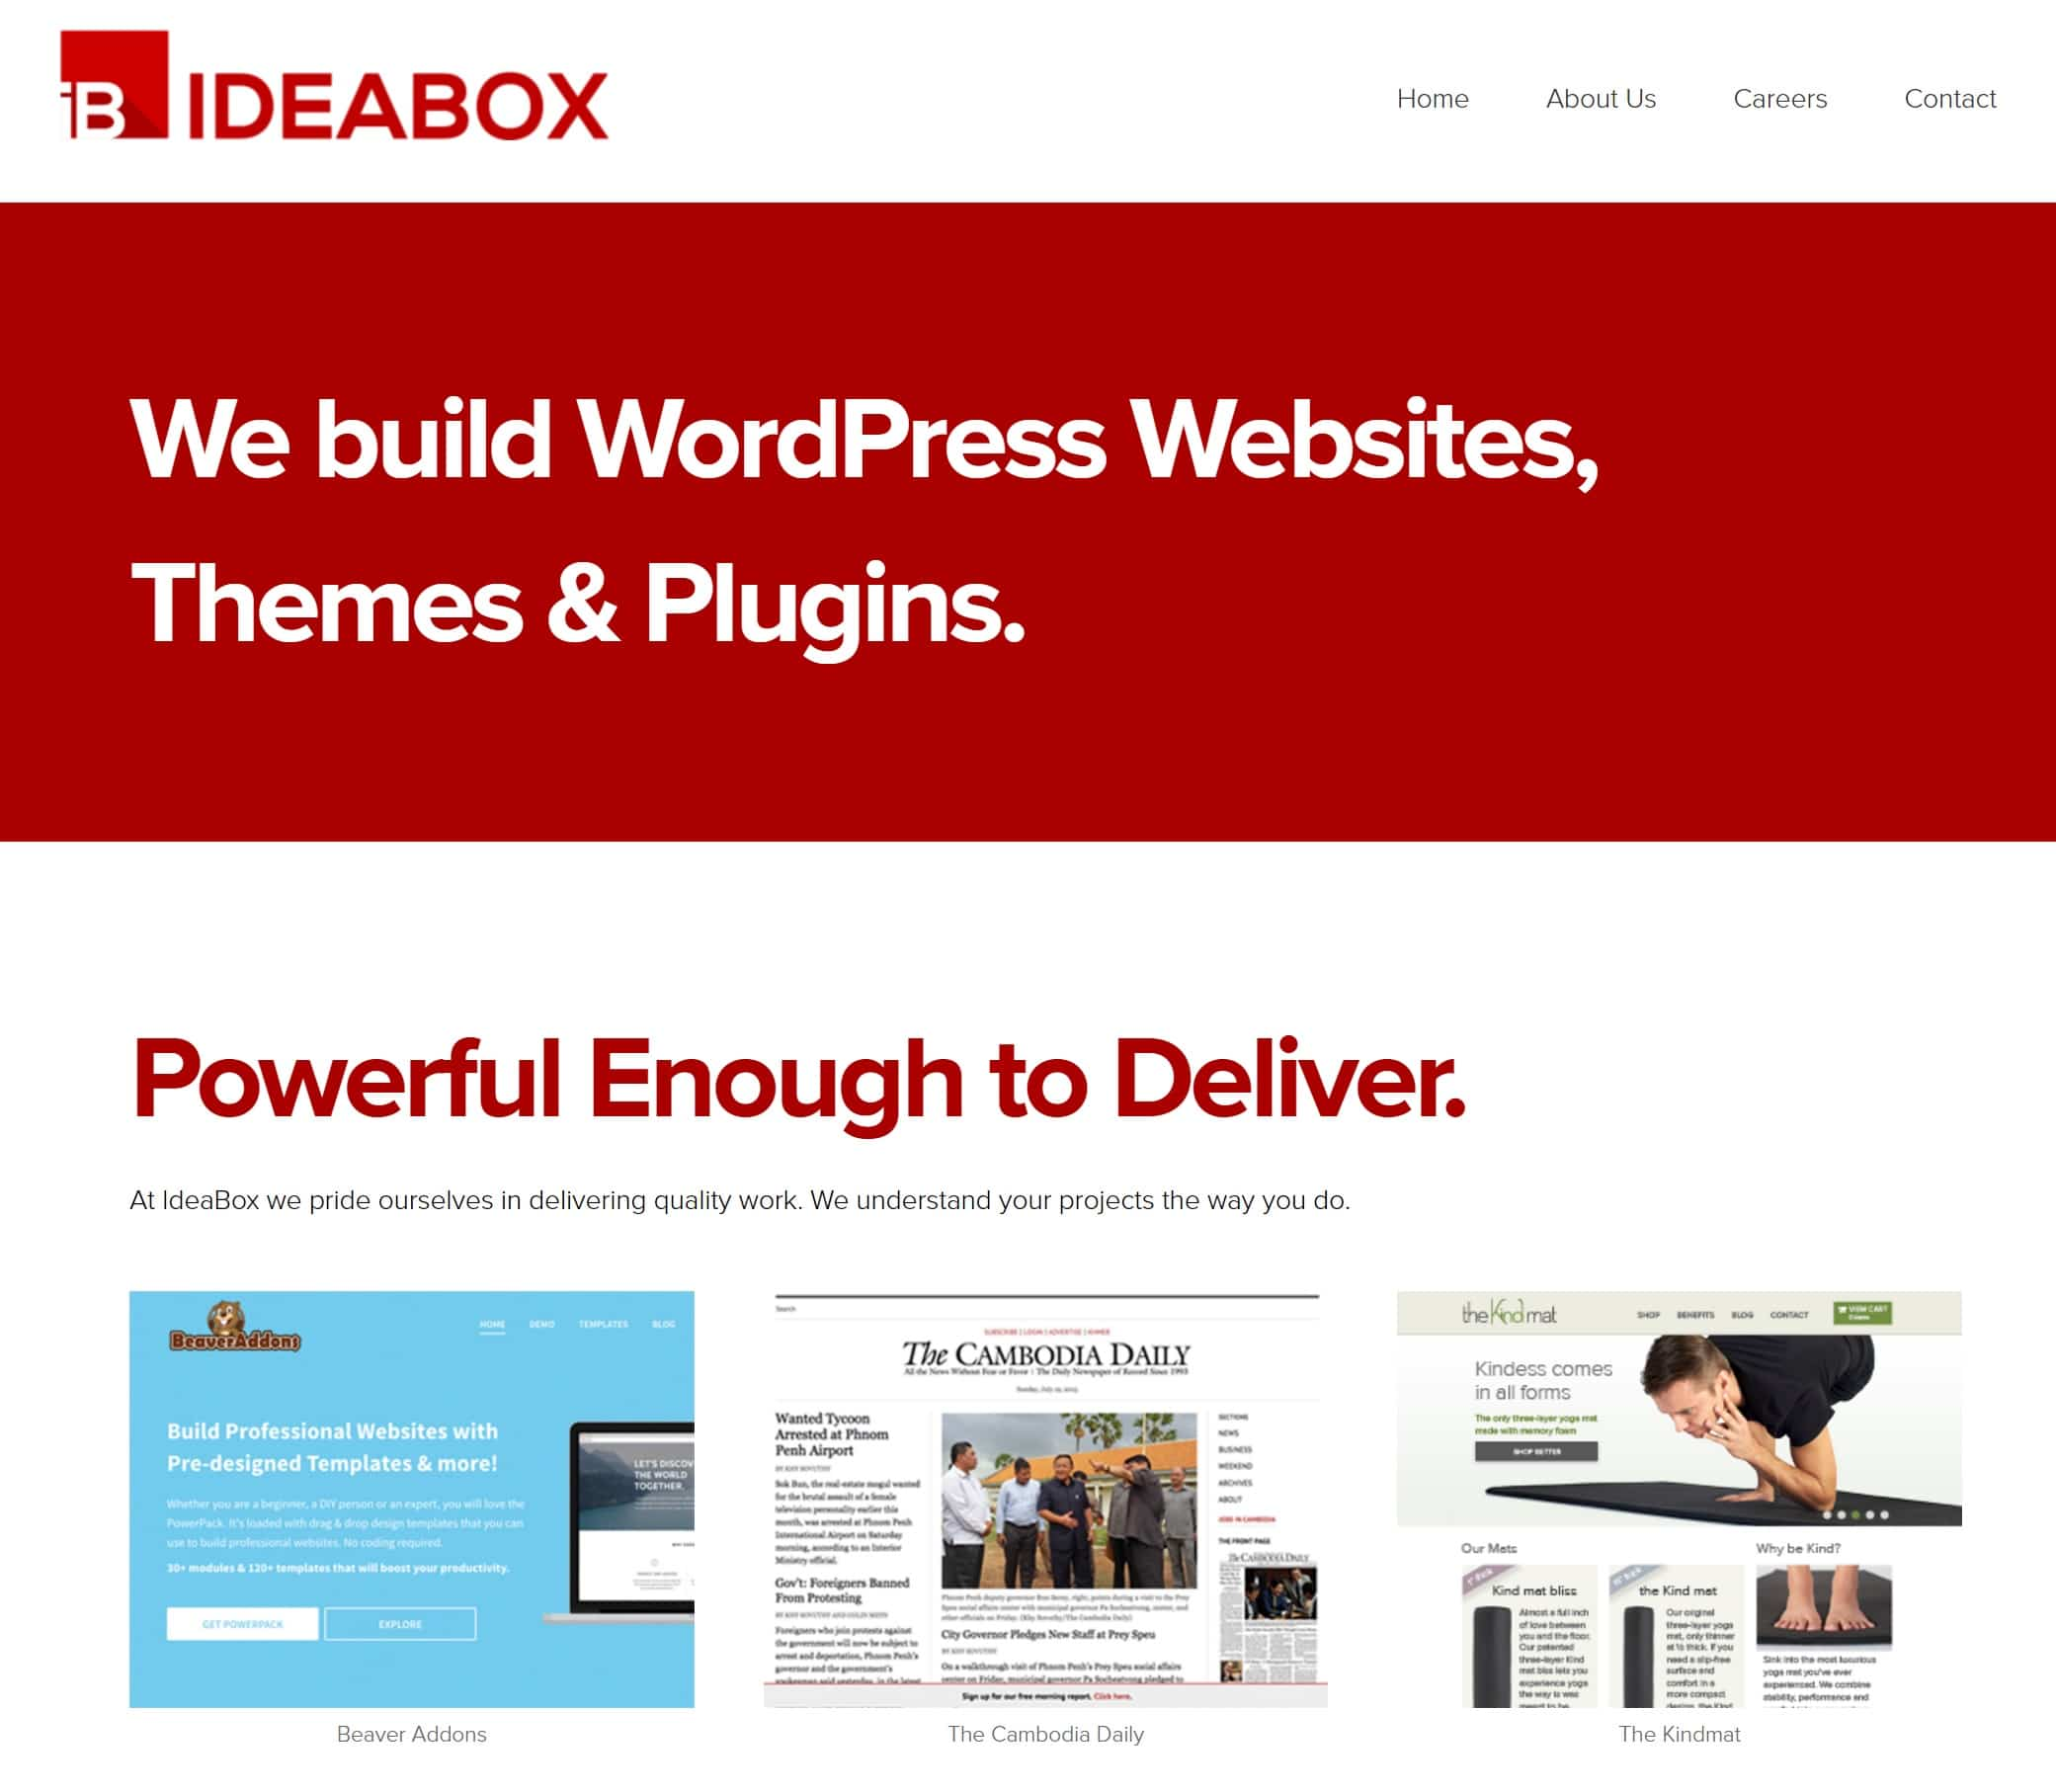 ideabox website